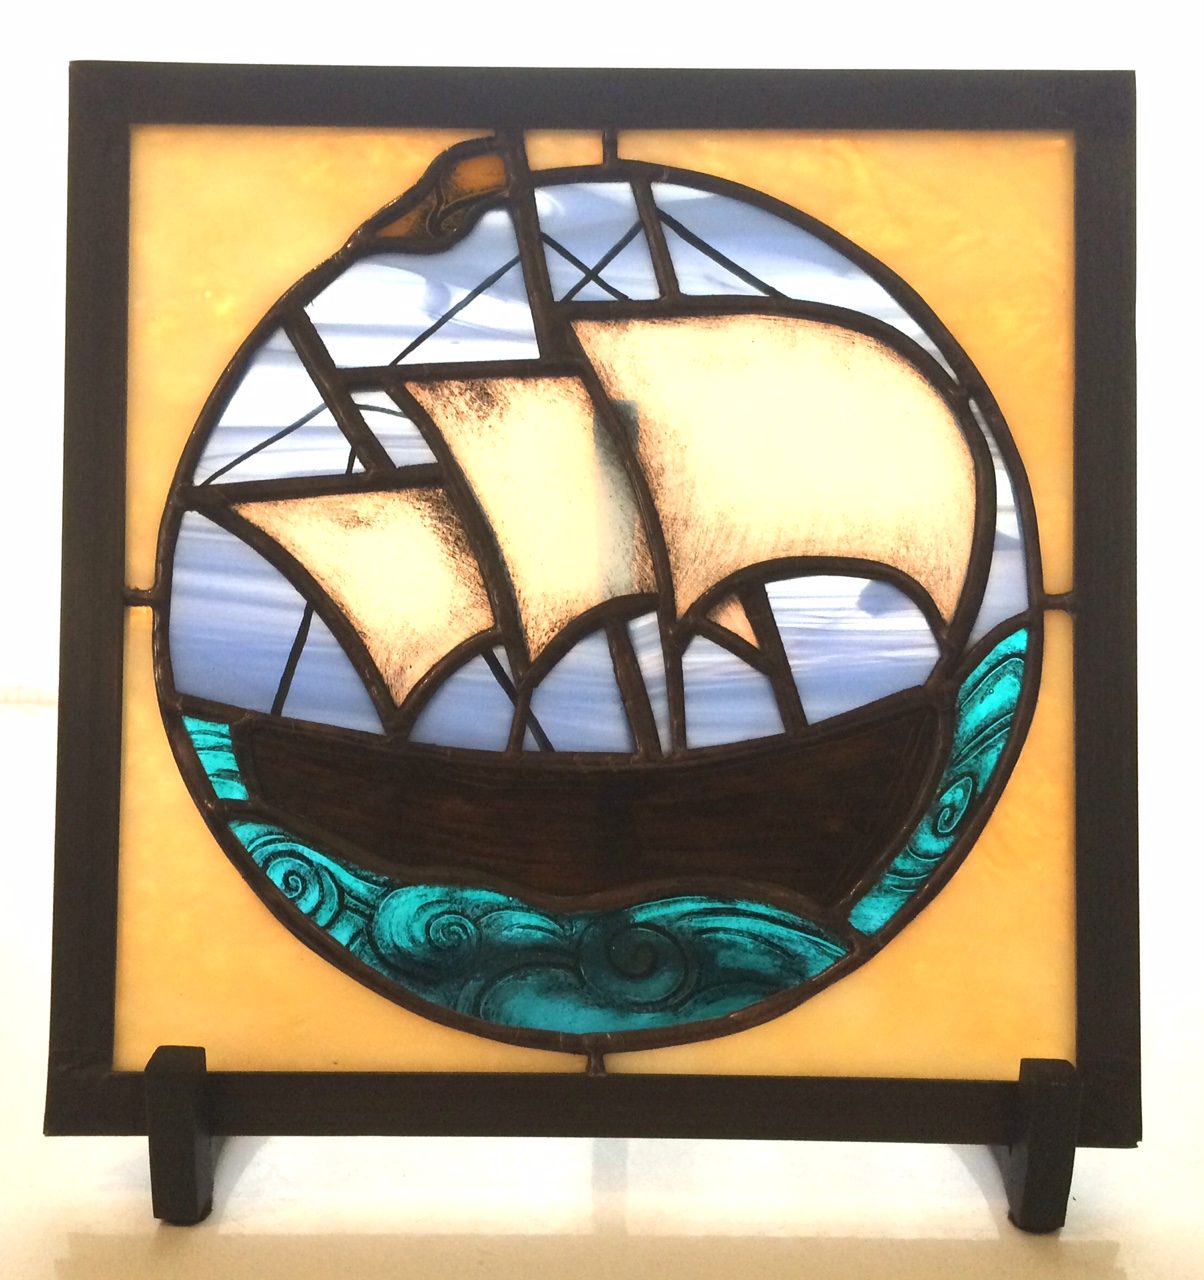 """SHIP  9"""" WideX 9"""" High. With hand-painted details. $195.00 + Shipping & Handling  Fits 14"""" Oak Frame,additional $95.00"""